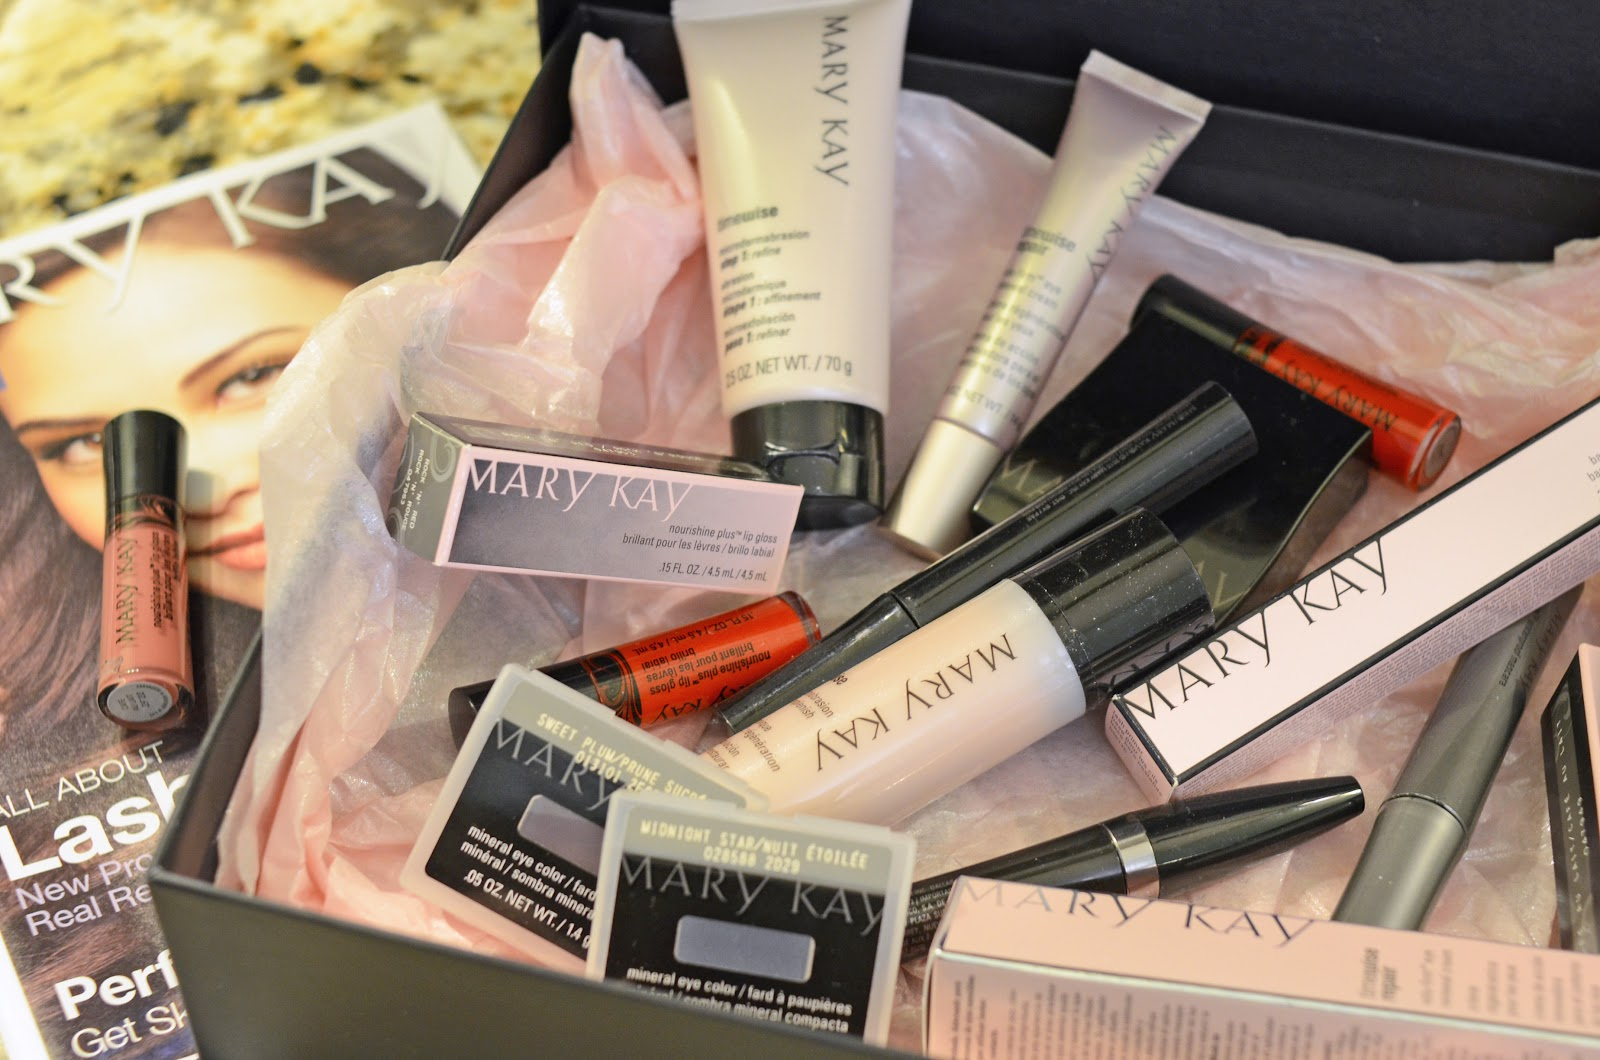 Mary kay review gift basket giveaway or so she says mary kay review gift basket giveaway negle Gallery